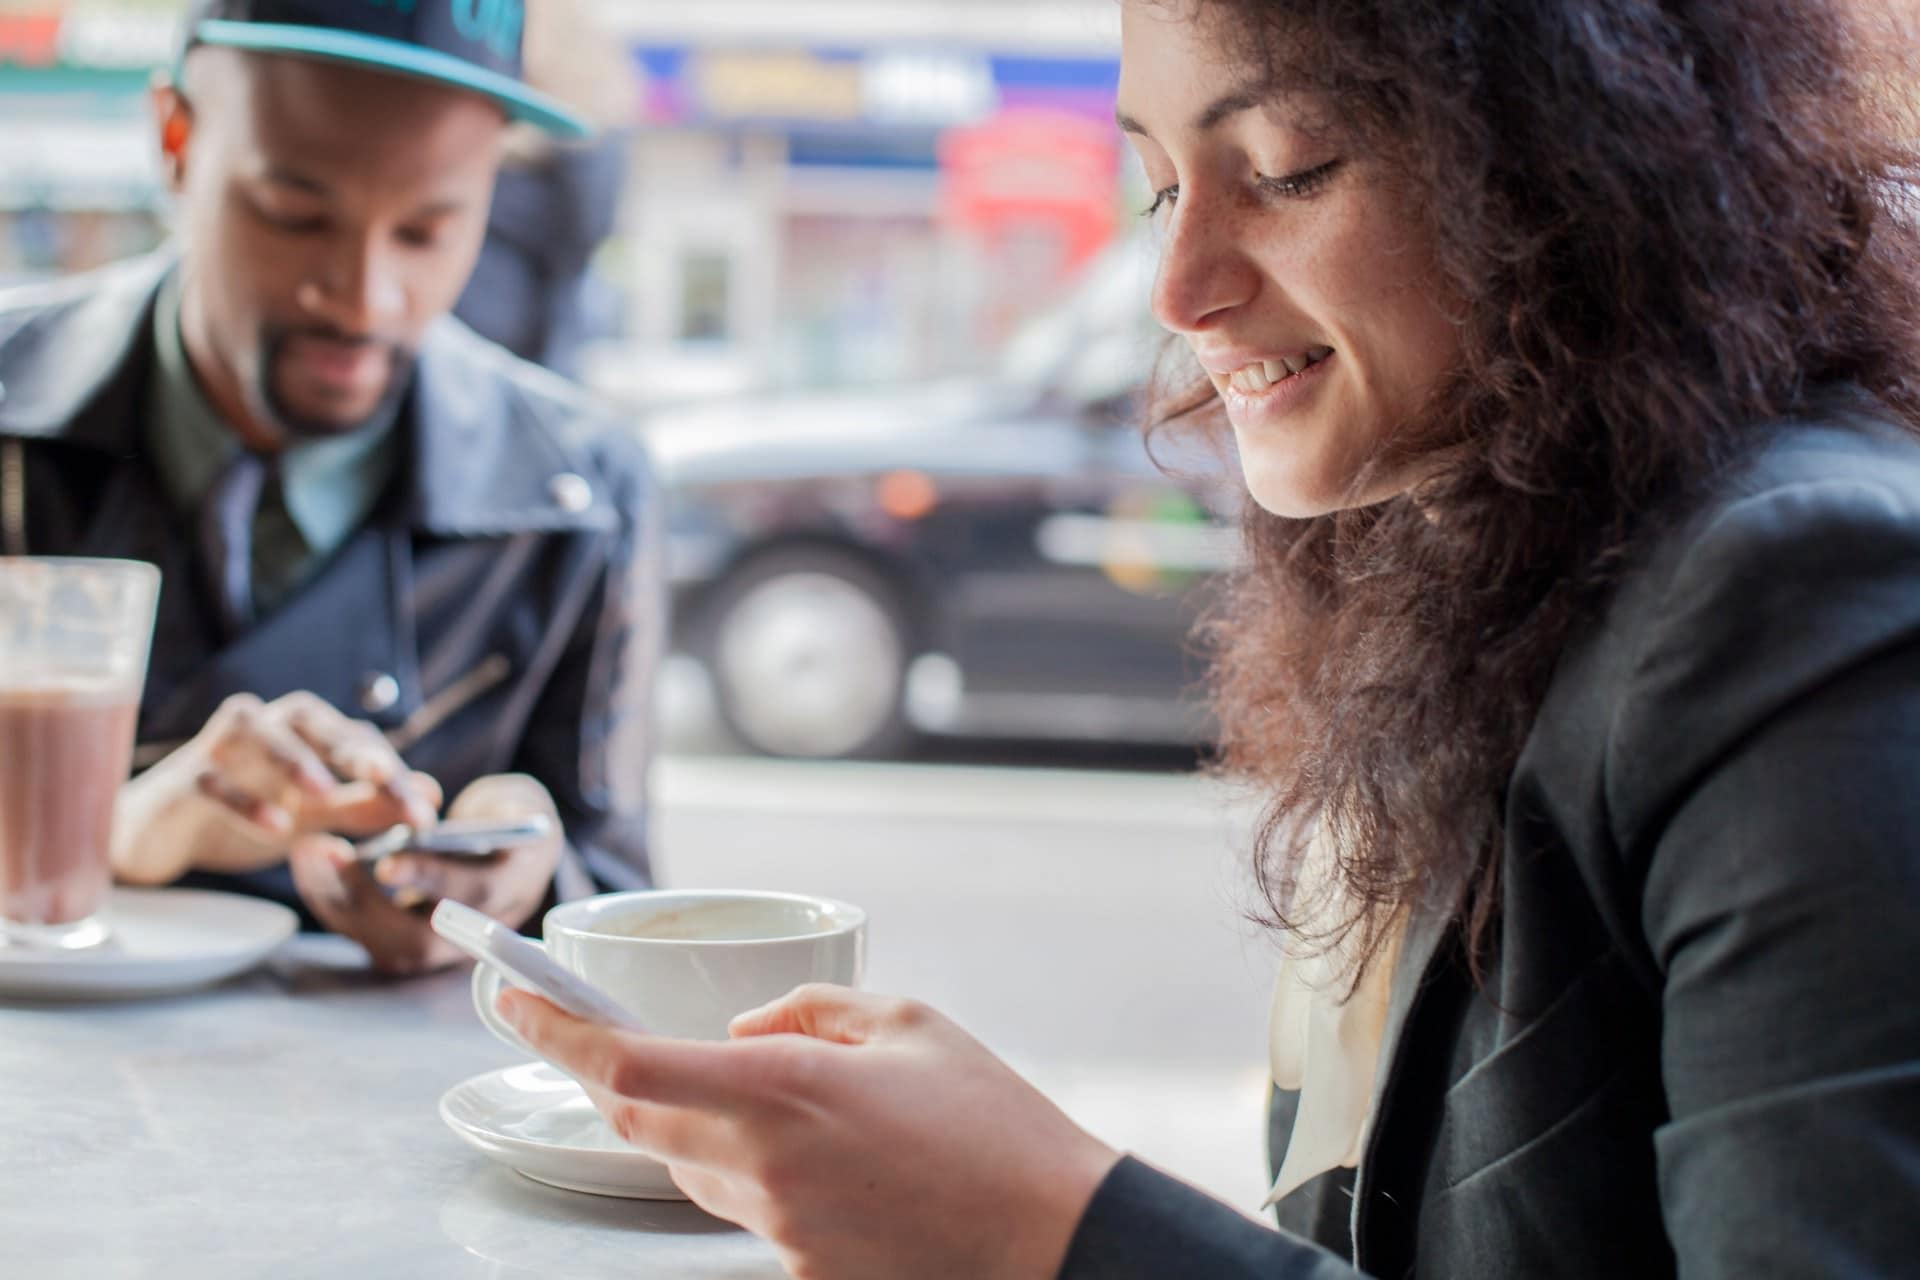 young couple looking at their mobile phones and drinking coffee